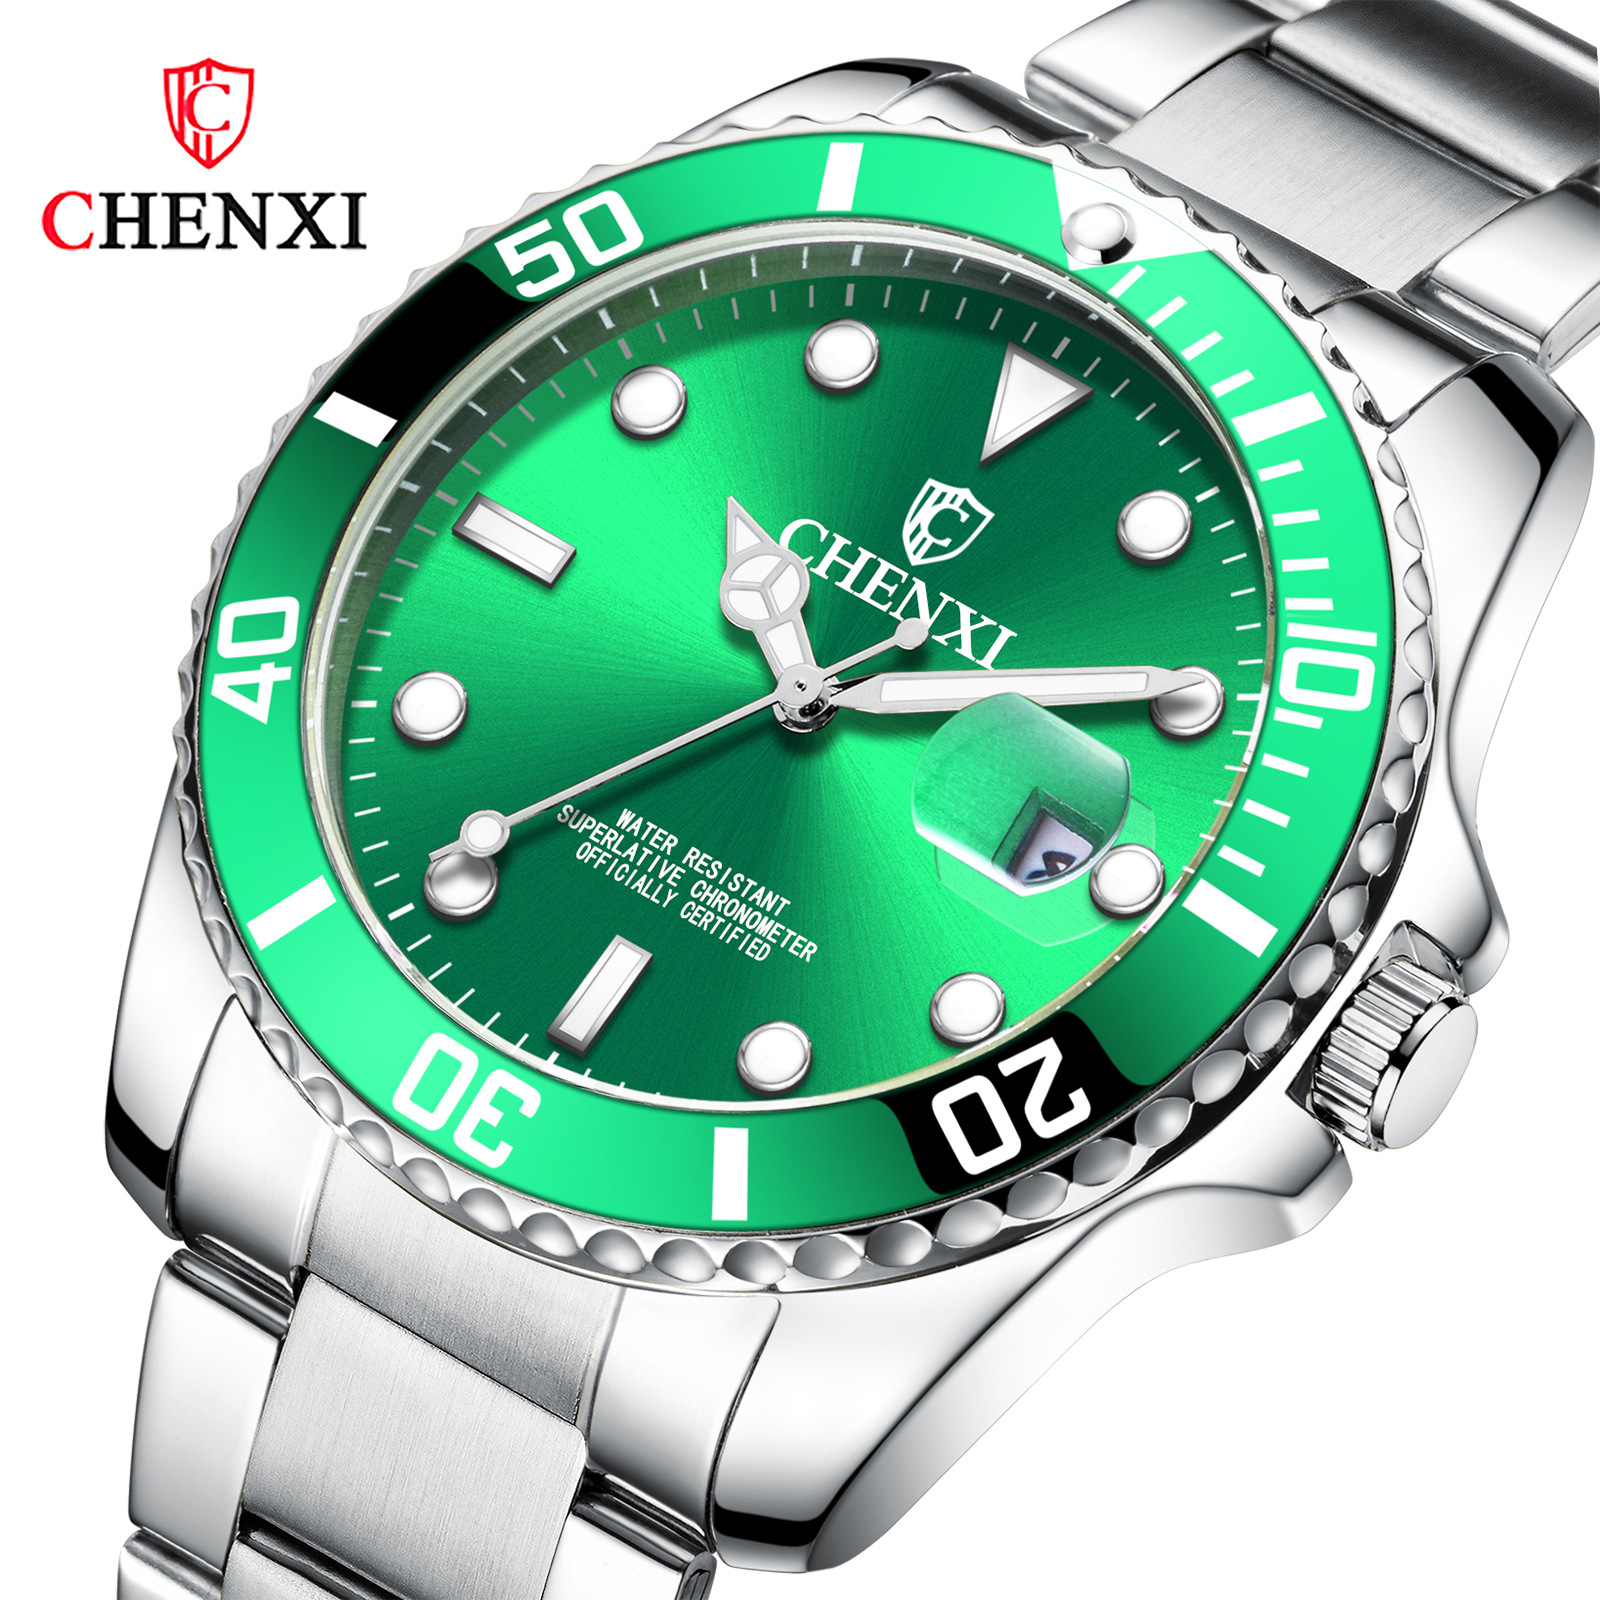 Fashionable Fashionable Person Watch CHENXI Brand Waterproof Couple Watch Douyin Hot Style Water Ghost Watch Man